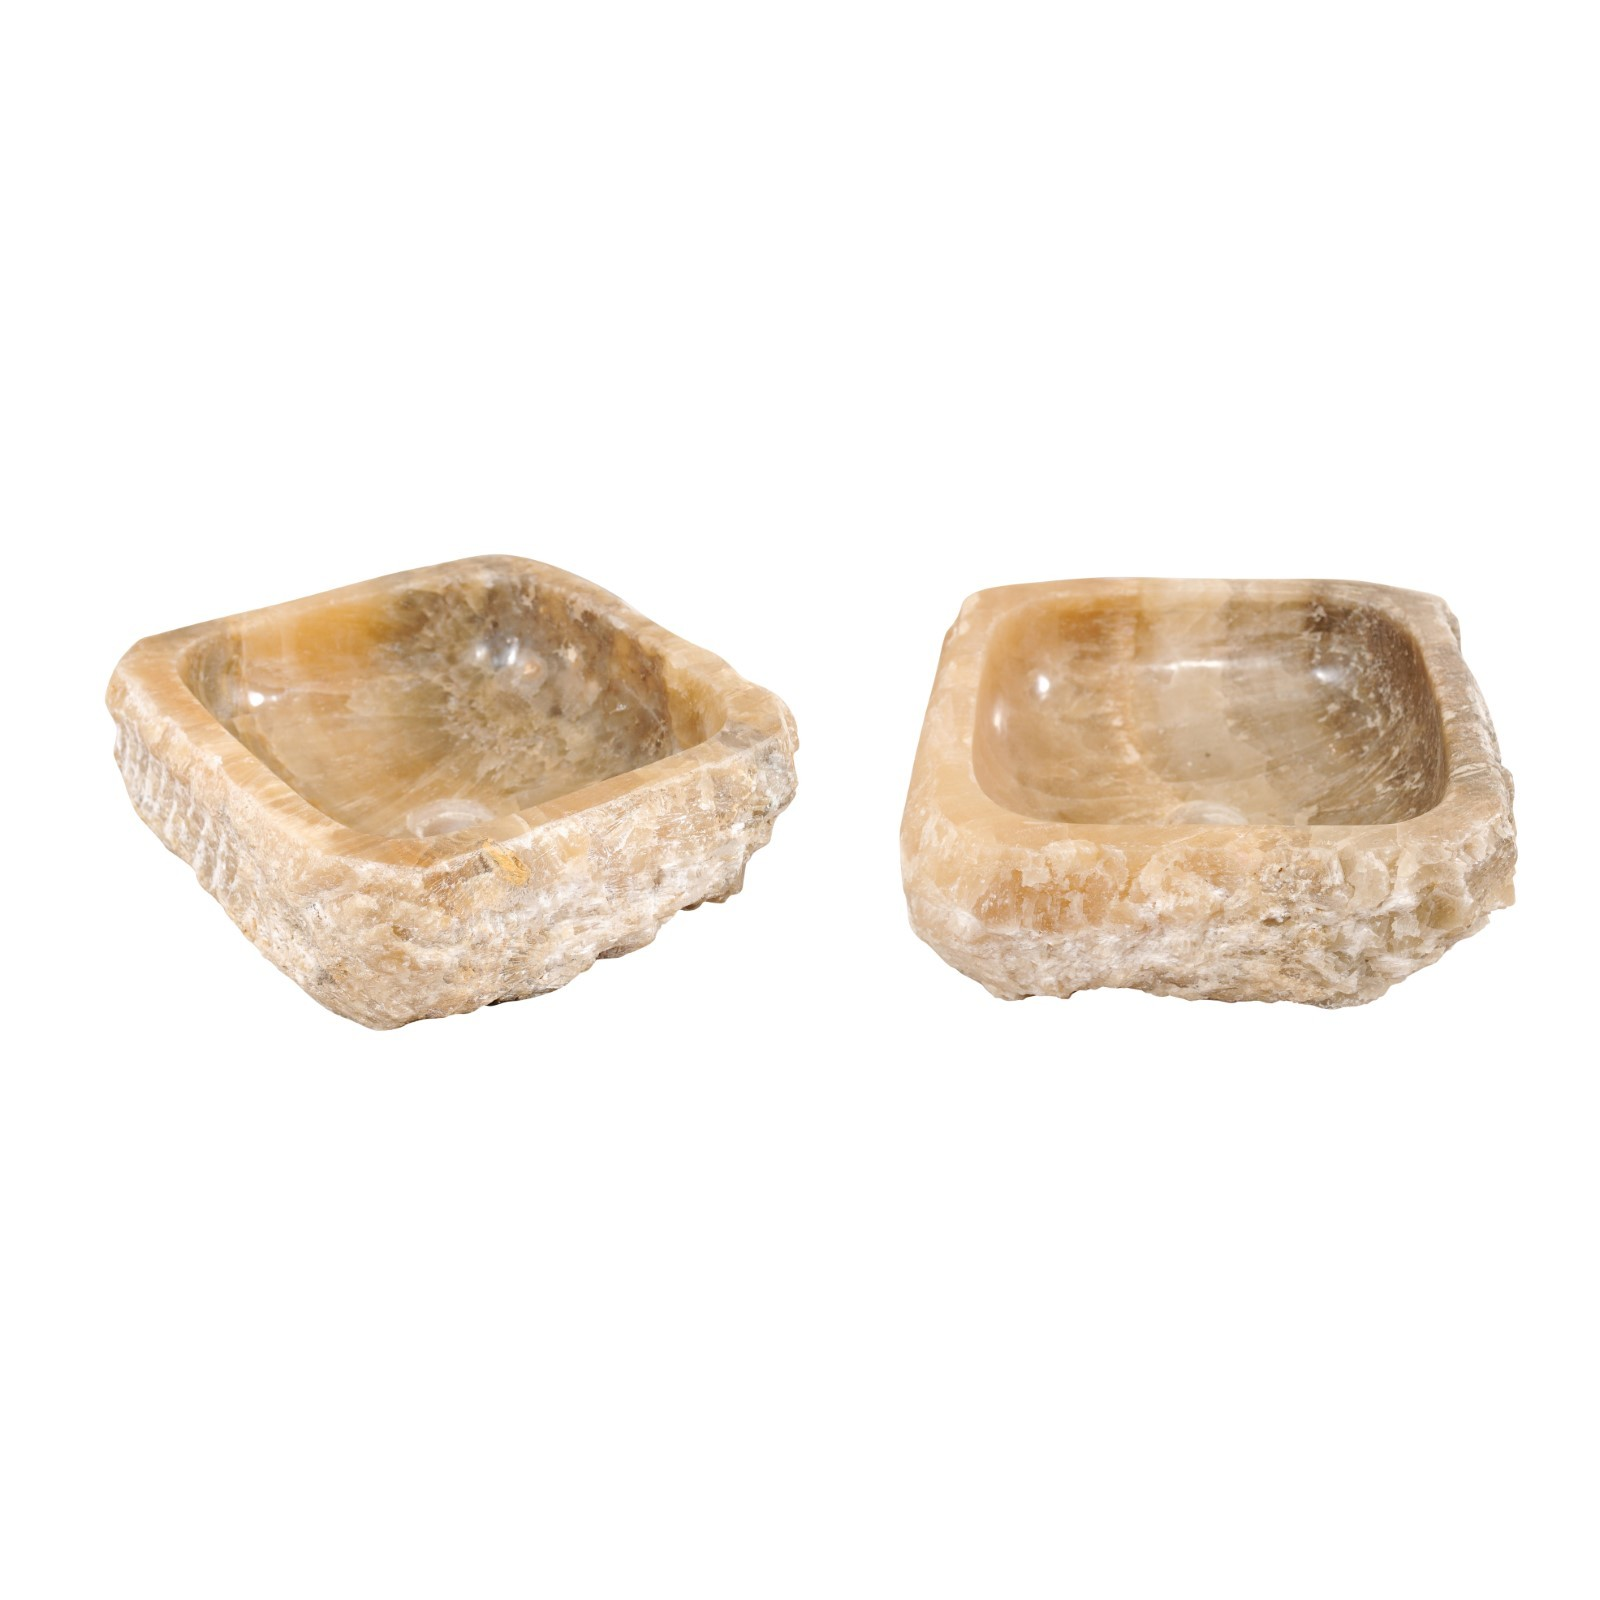 A Pair of Natural Onyx Sink Basins